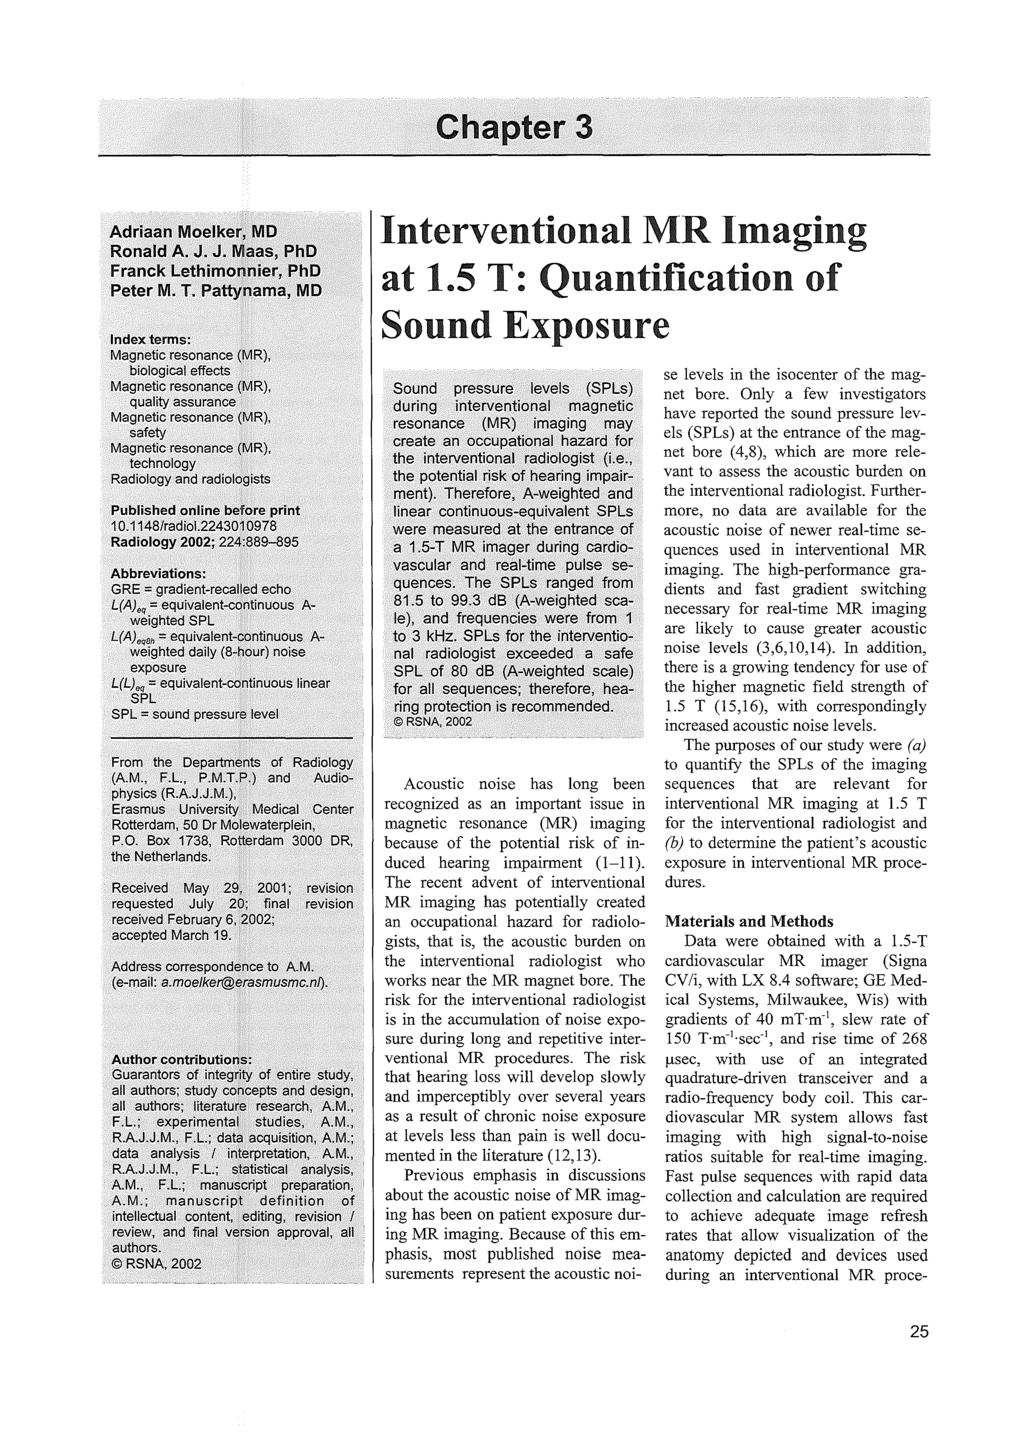 Evaluation Of Acoustic Noise In Magnetic Resonance Imaging Pdf The Ds1669 Is An Electronic Digital Rheostat Manufactured By Dallas Chapter 3 Adriaan Moelkemd Ronald A J Mas Phd Franck